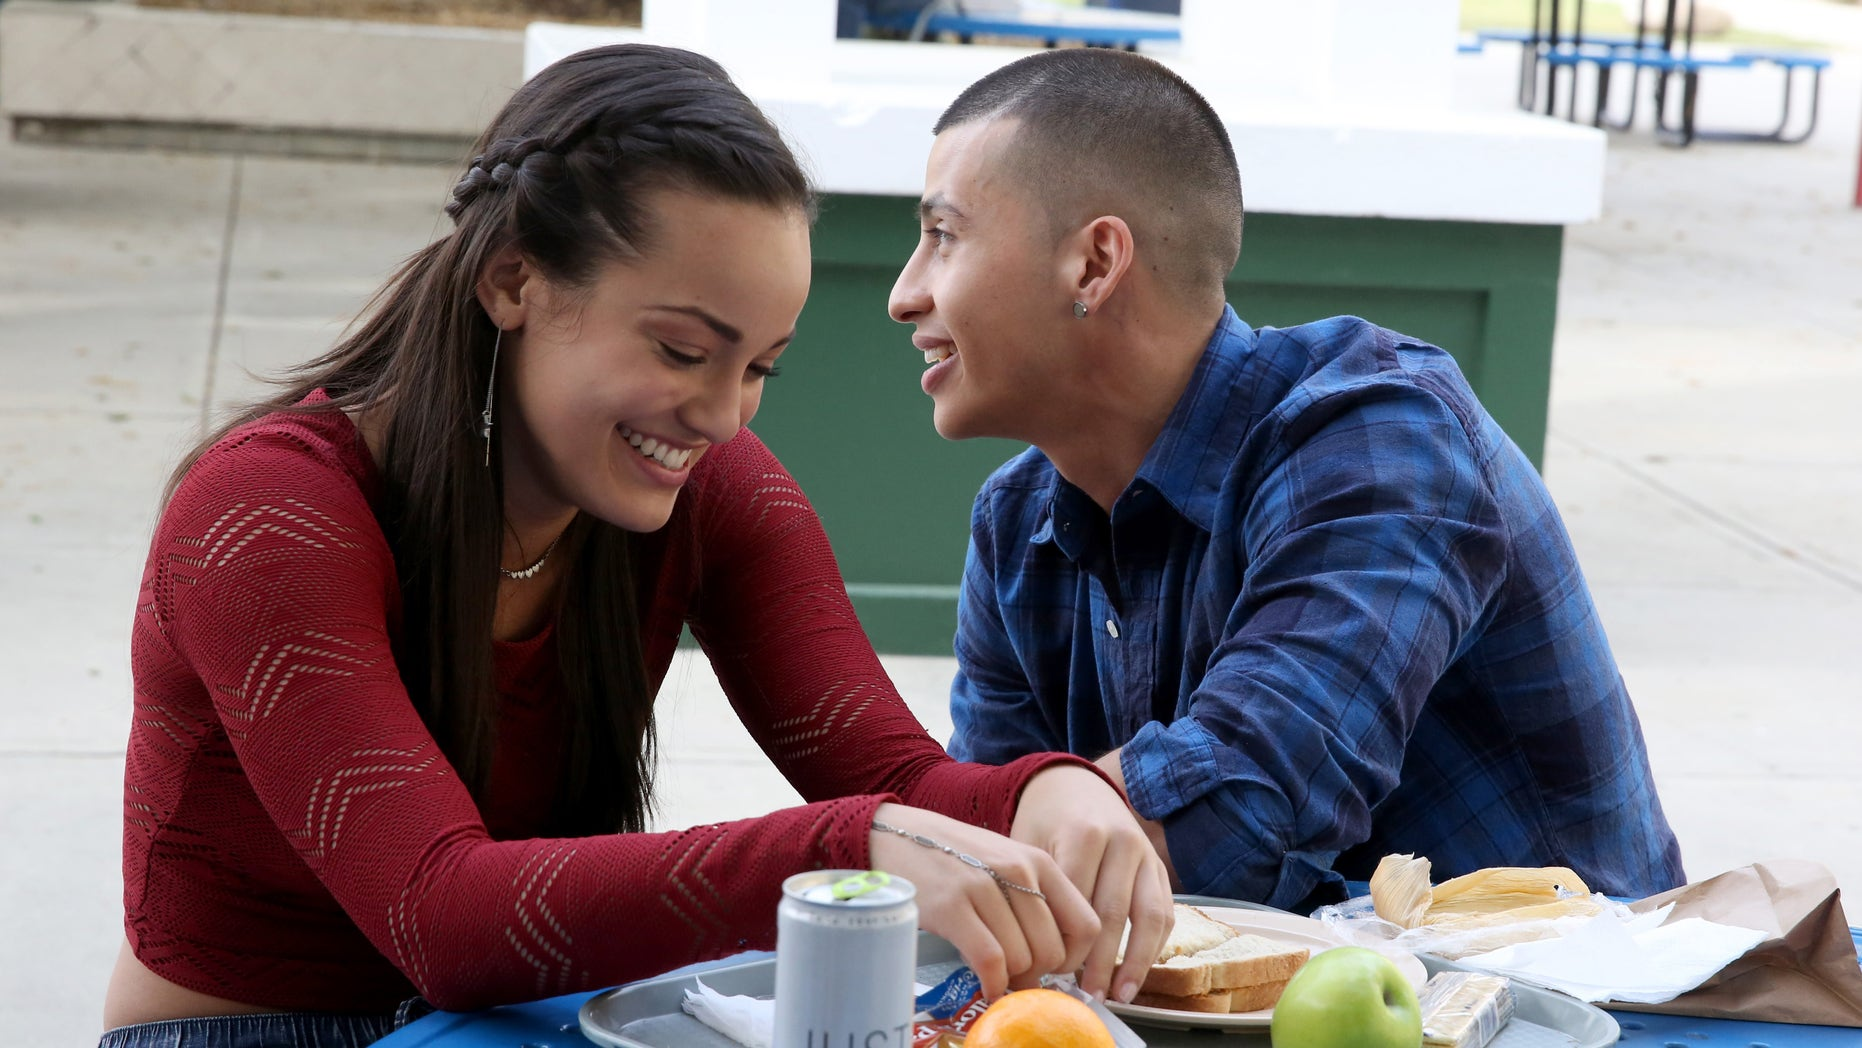 Alexandra Rodriguez and Carlito Olivero on the set of East Los High 3.